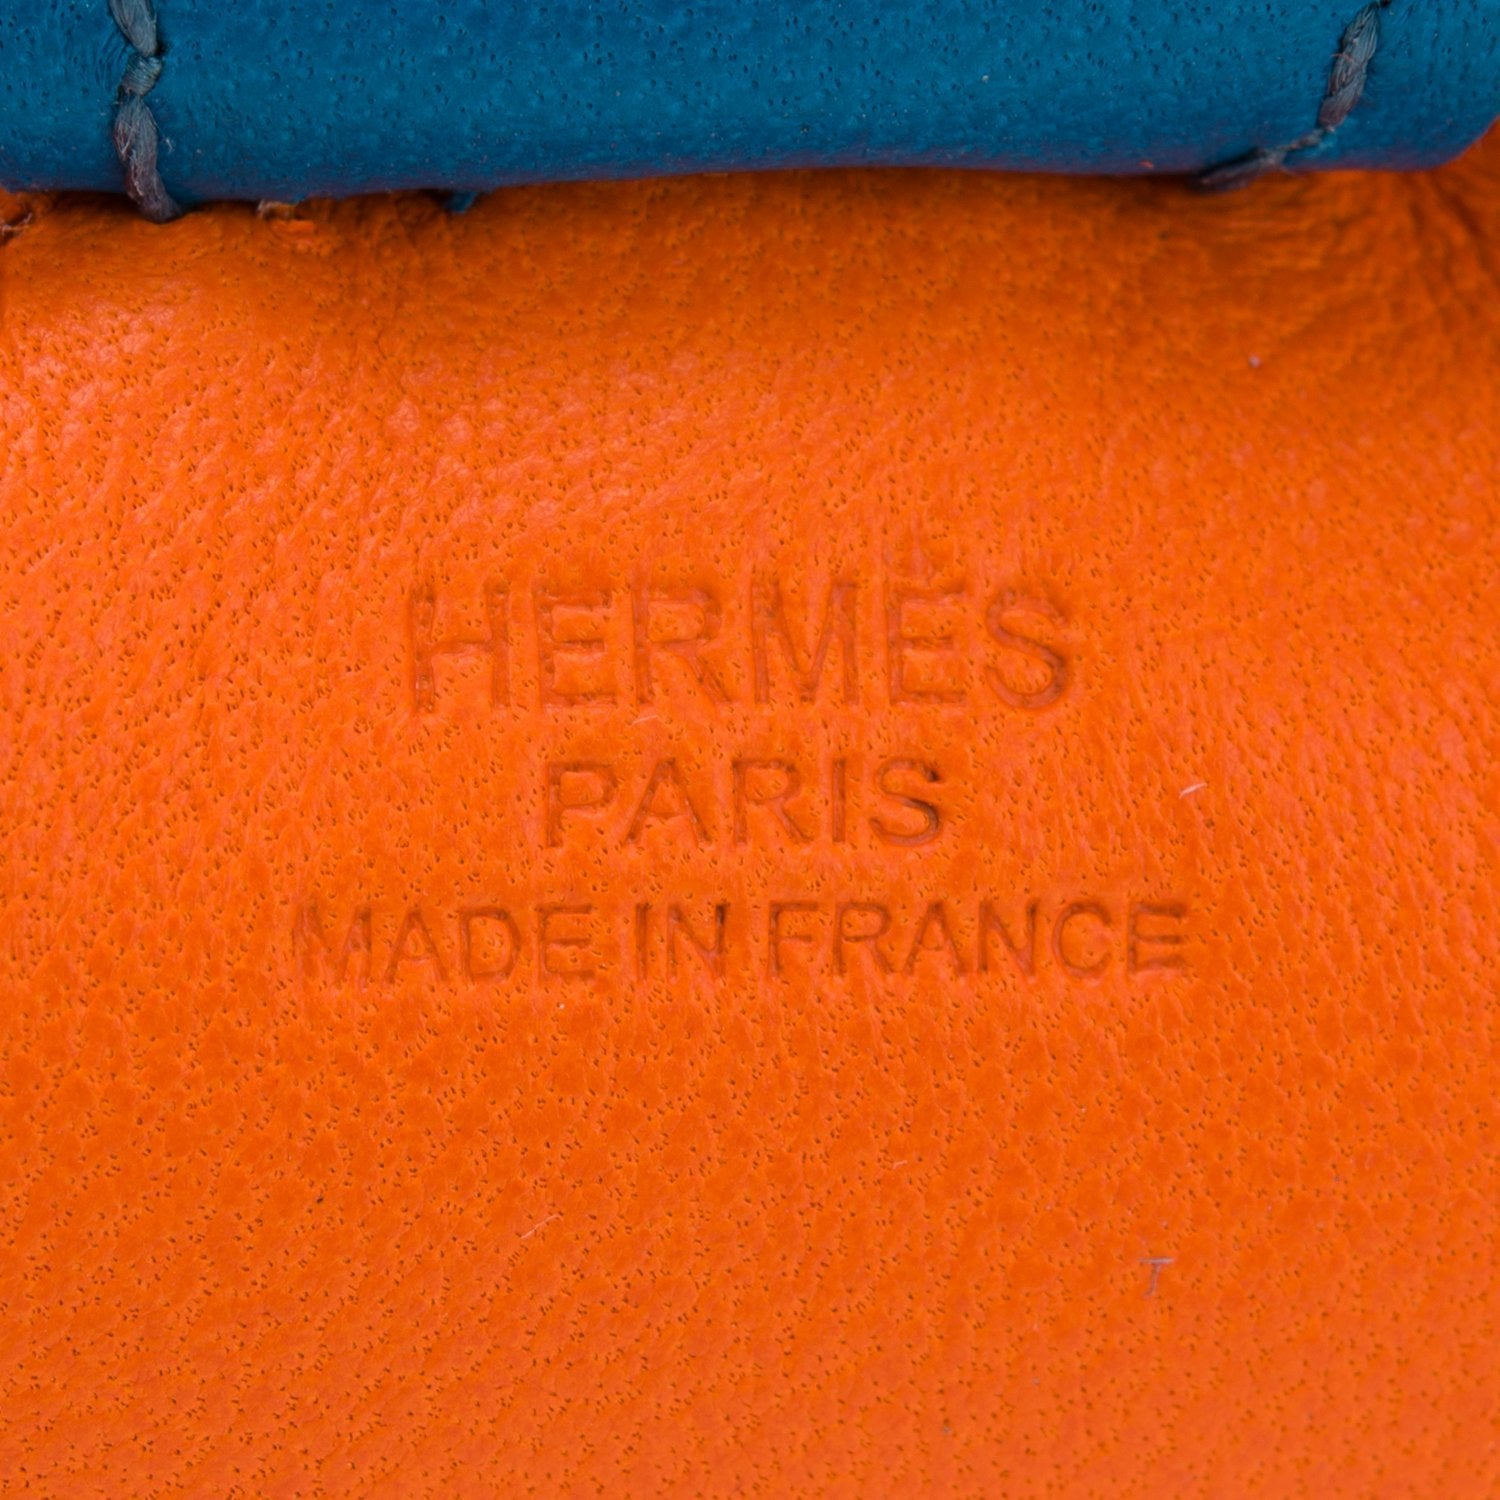 Hermes Feu Horse Rodeo Bag Charm Pm Accessories